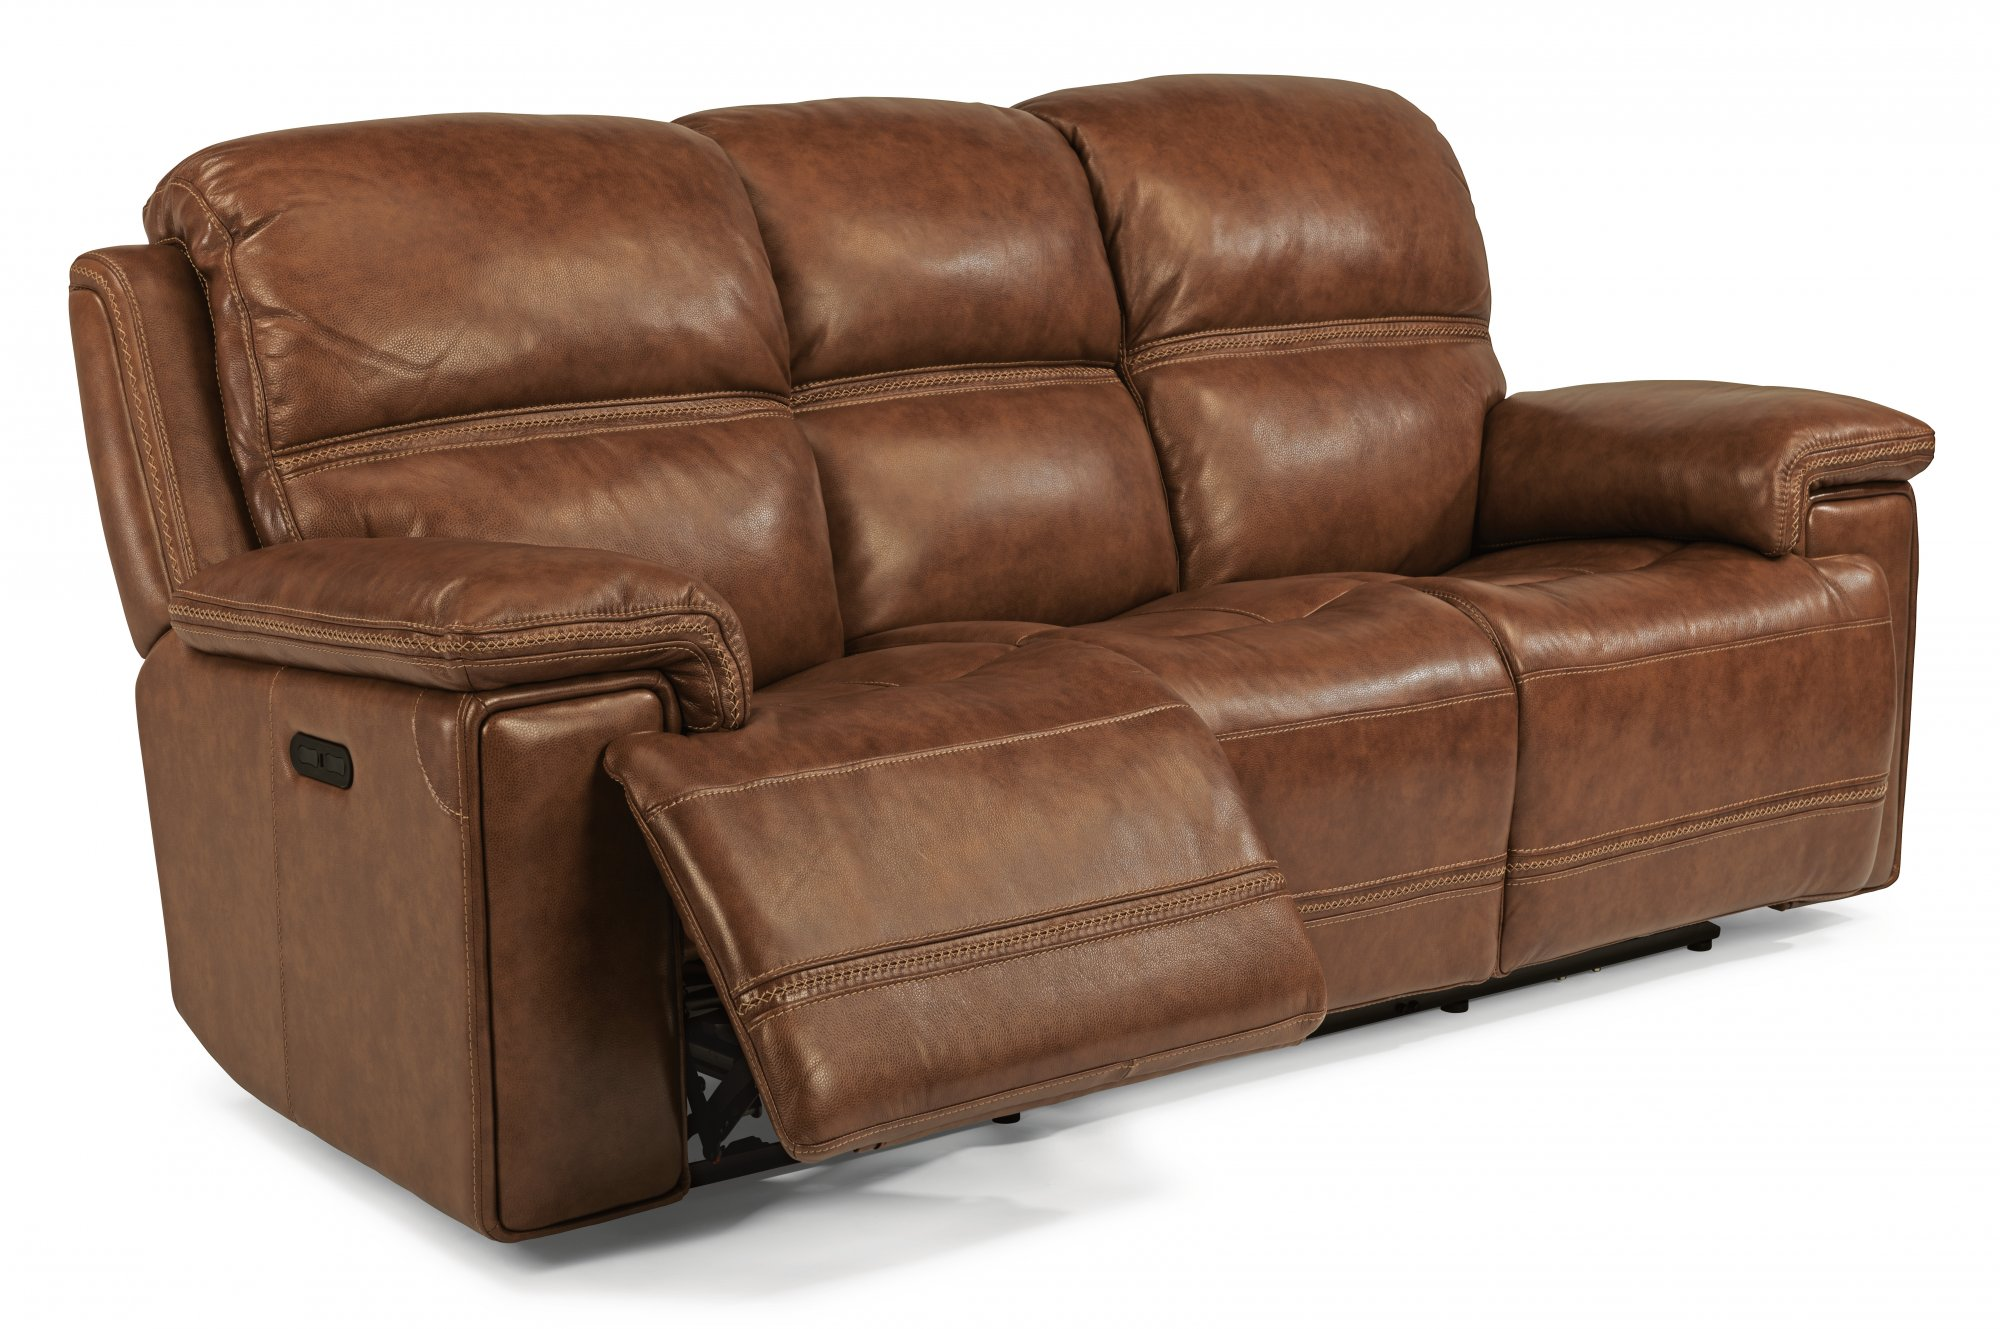 Get to Enjoy the reclining leather sofa in fort and style